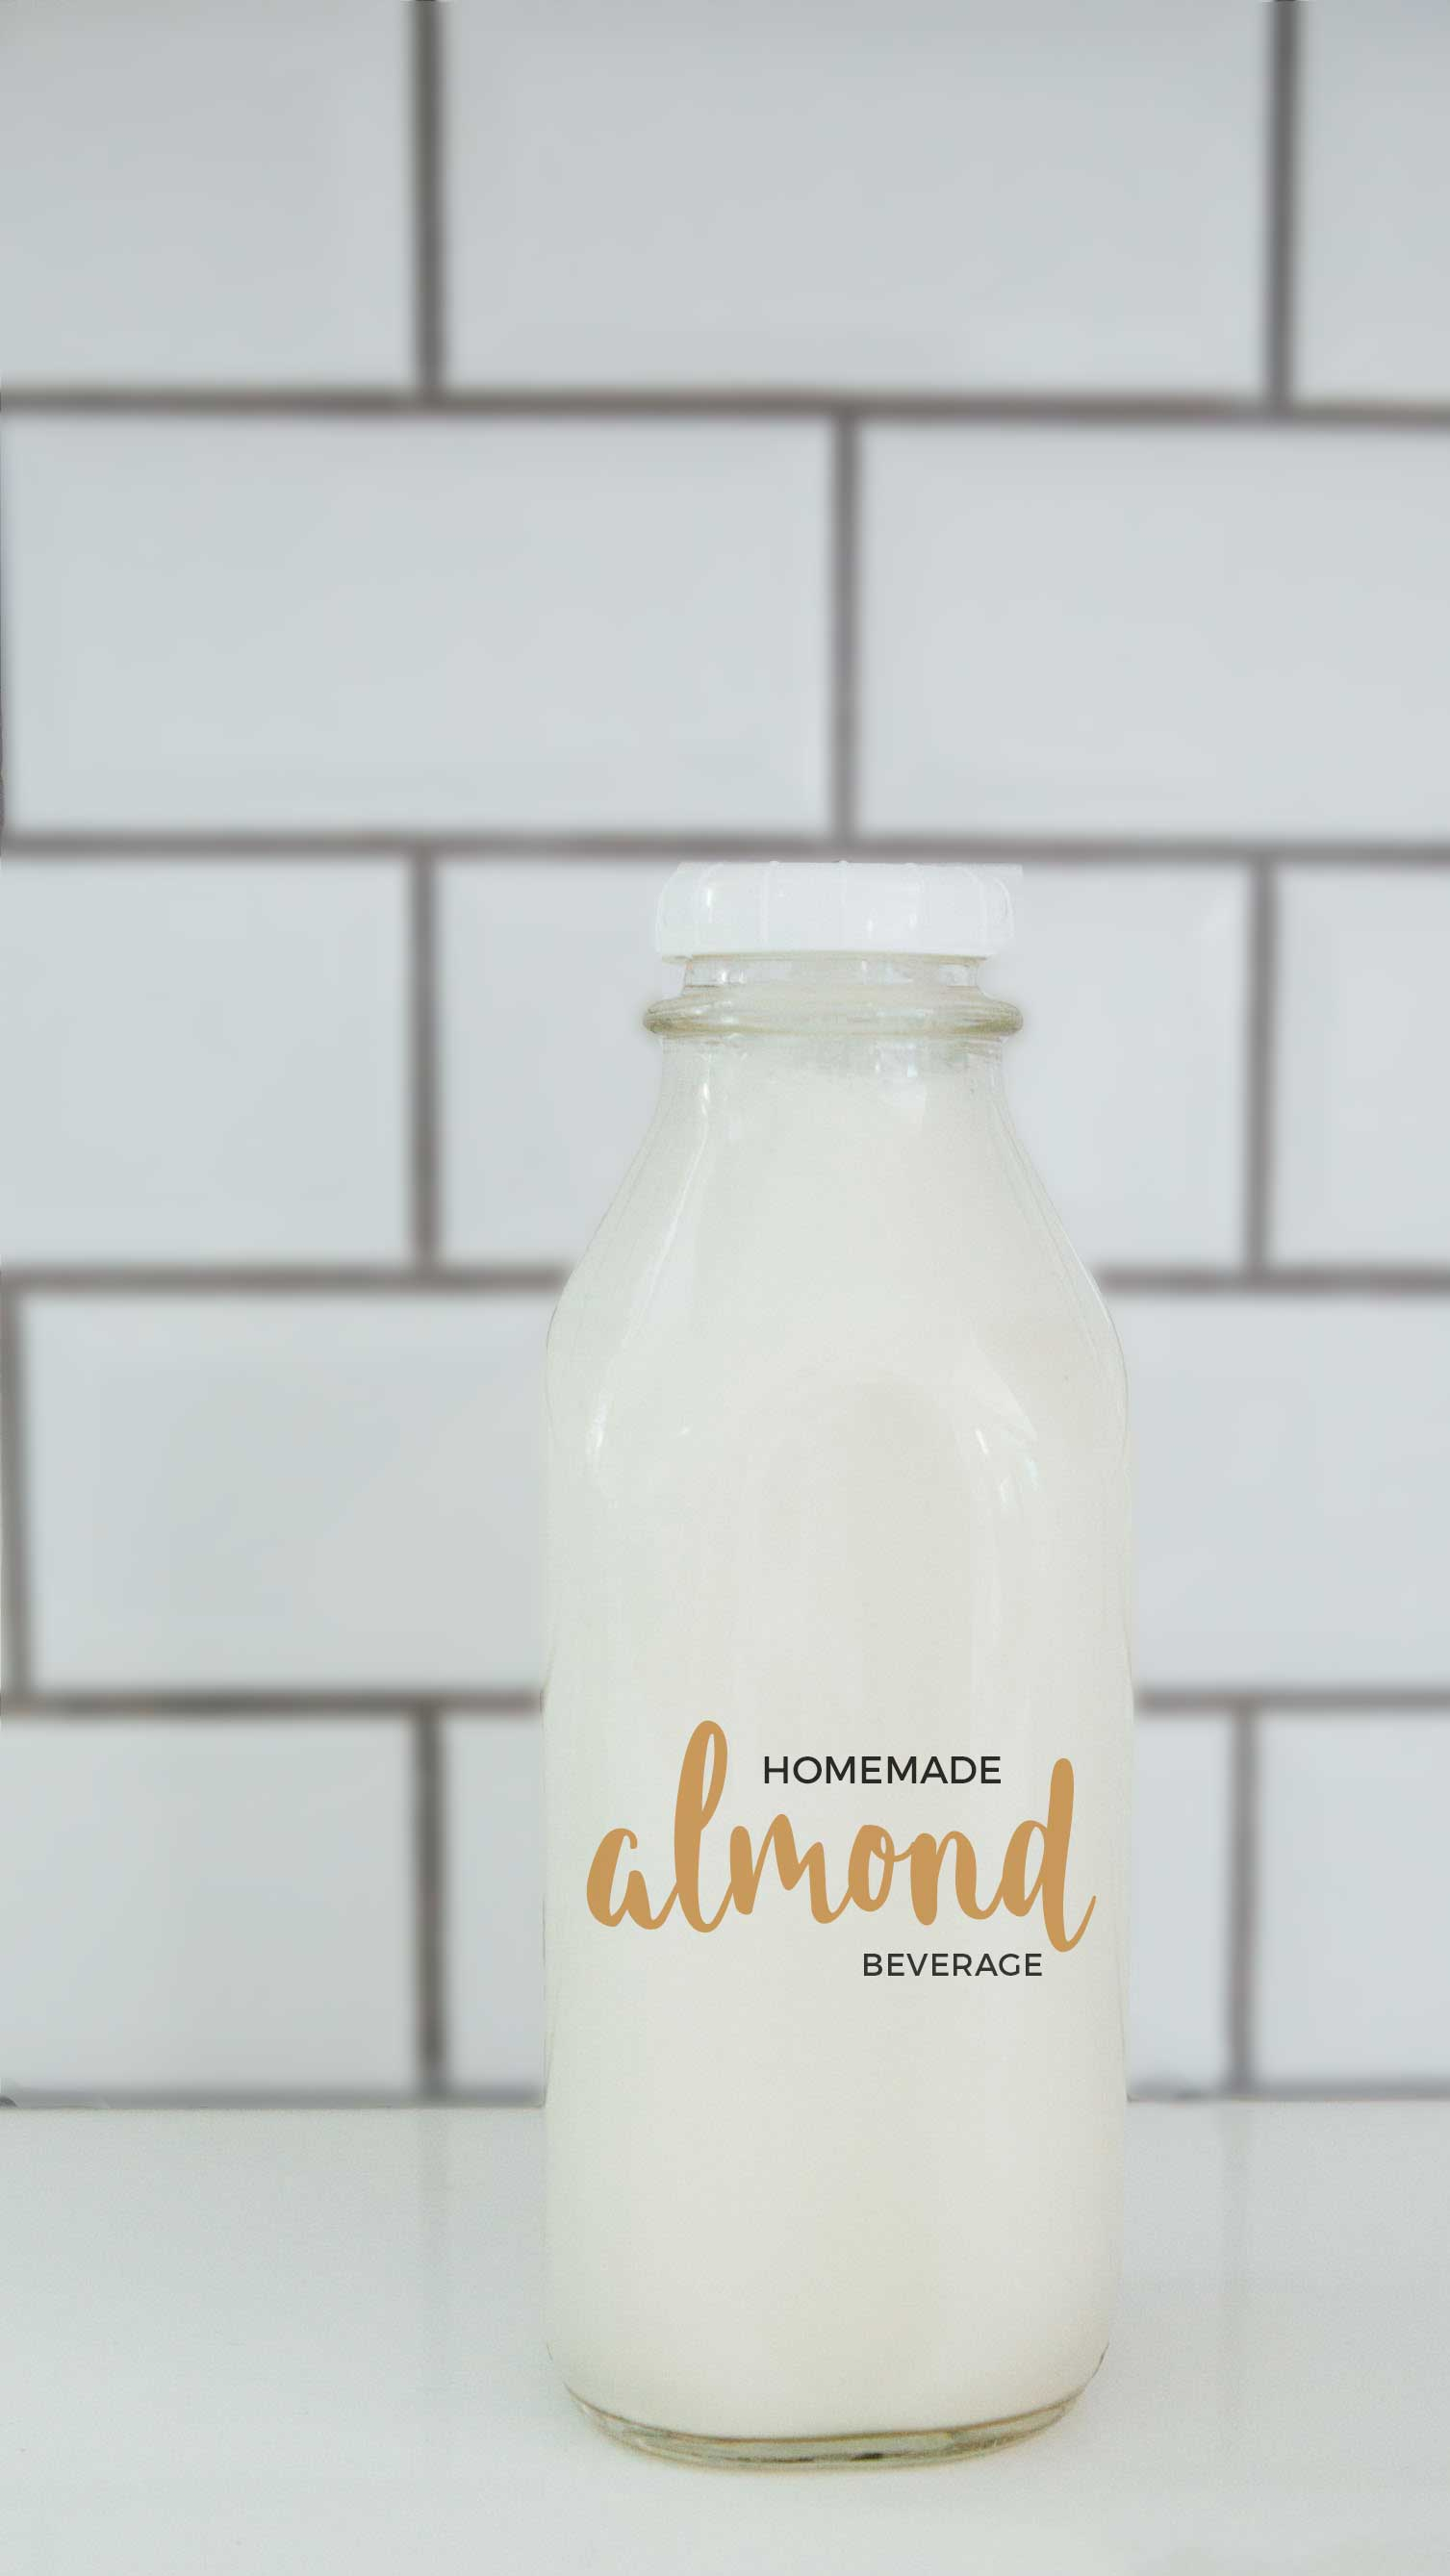 Making your own almond (milk) beverage at home is super easy and it seriously tastes so much cleaner and better than the store-bought kind. You know exactly what goes into it — almonds and water — and you can add additional flavors if you desire!